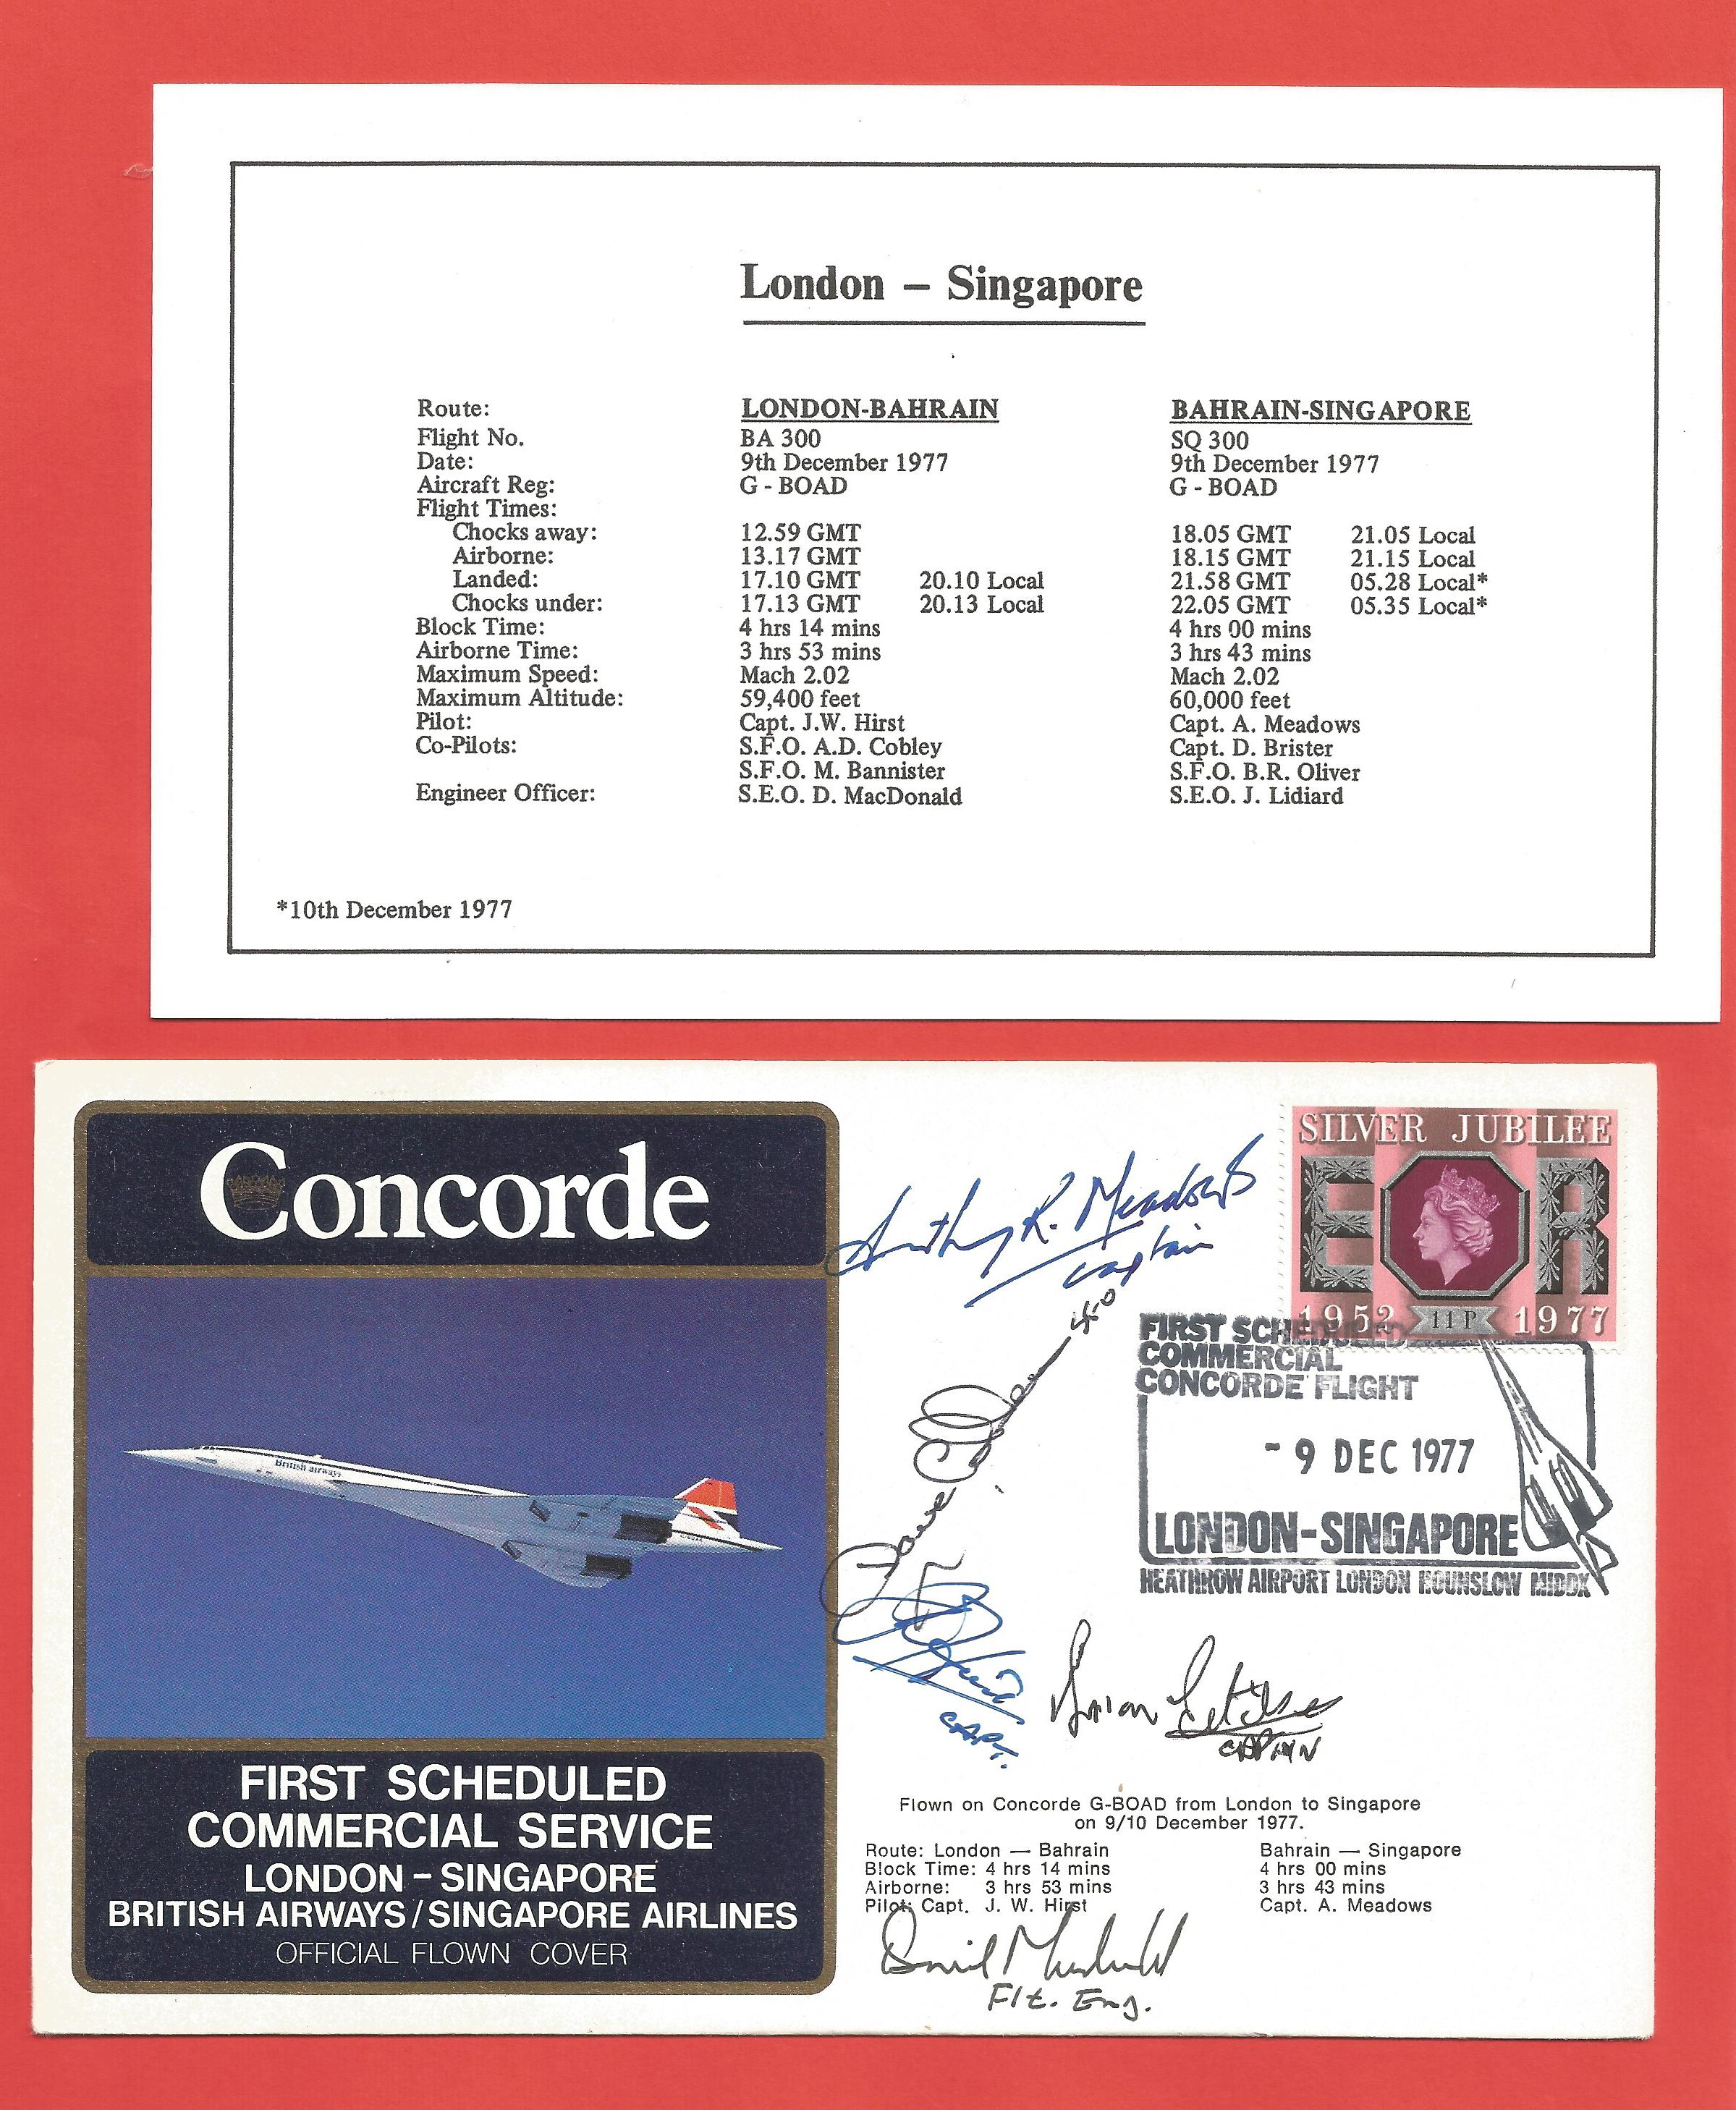 Concorde Crew signed British Airways First Flight cover. Flown 1st Scheduled Commercial Service from